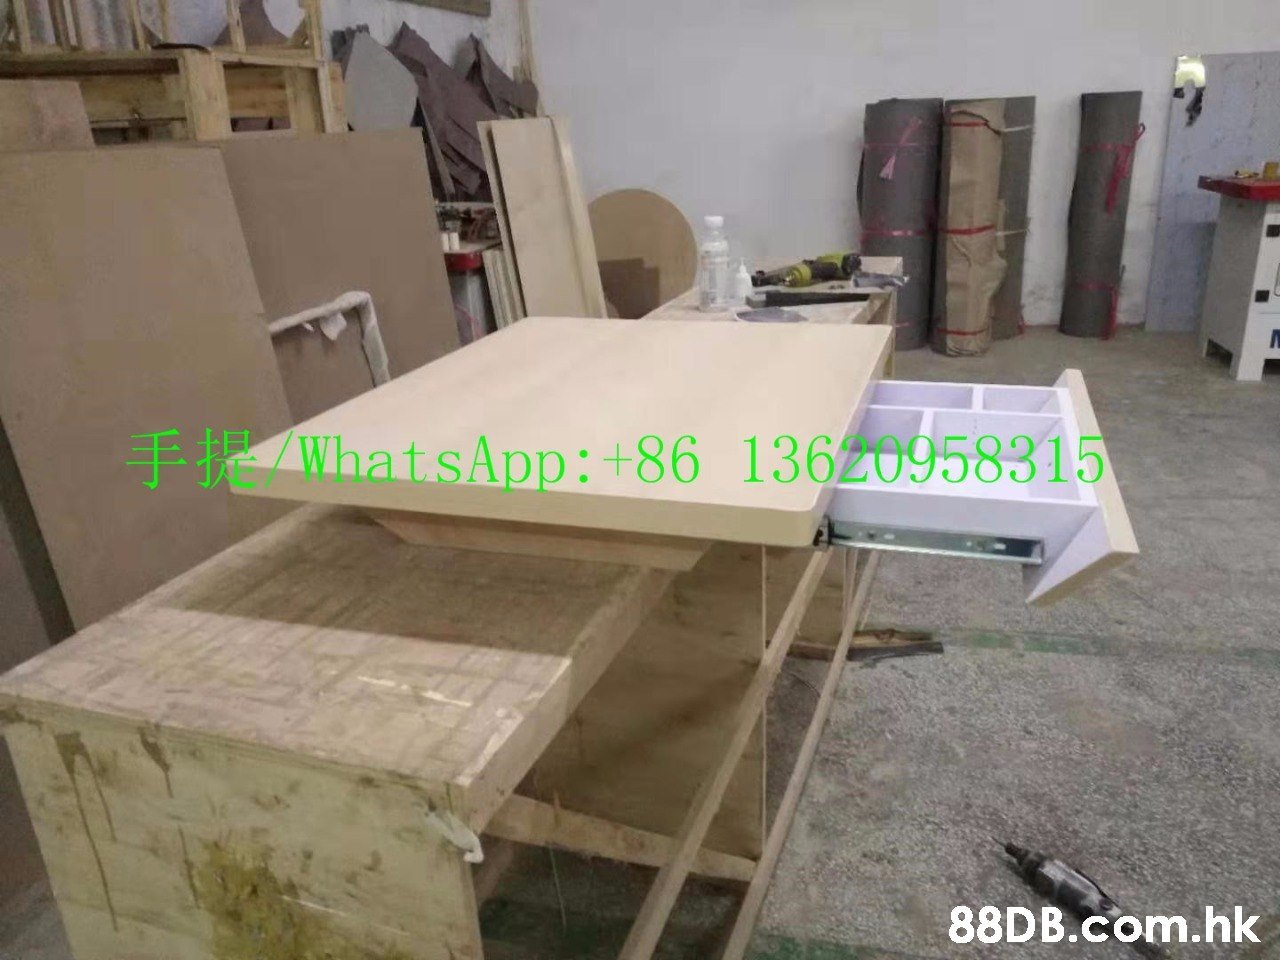 FWhatsApp : +86 13620958315 .hk  Table,Furniture,Wood,Plywood,Folding chair